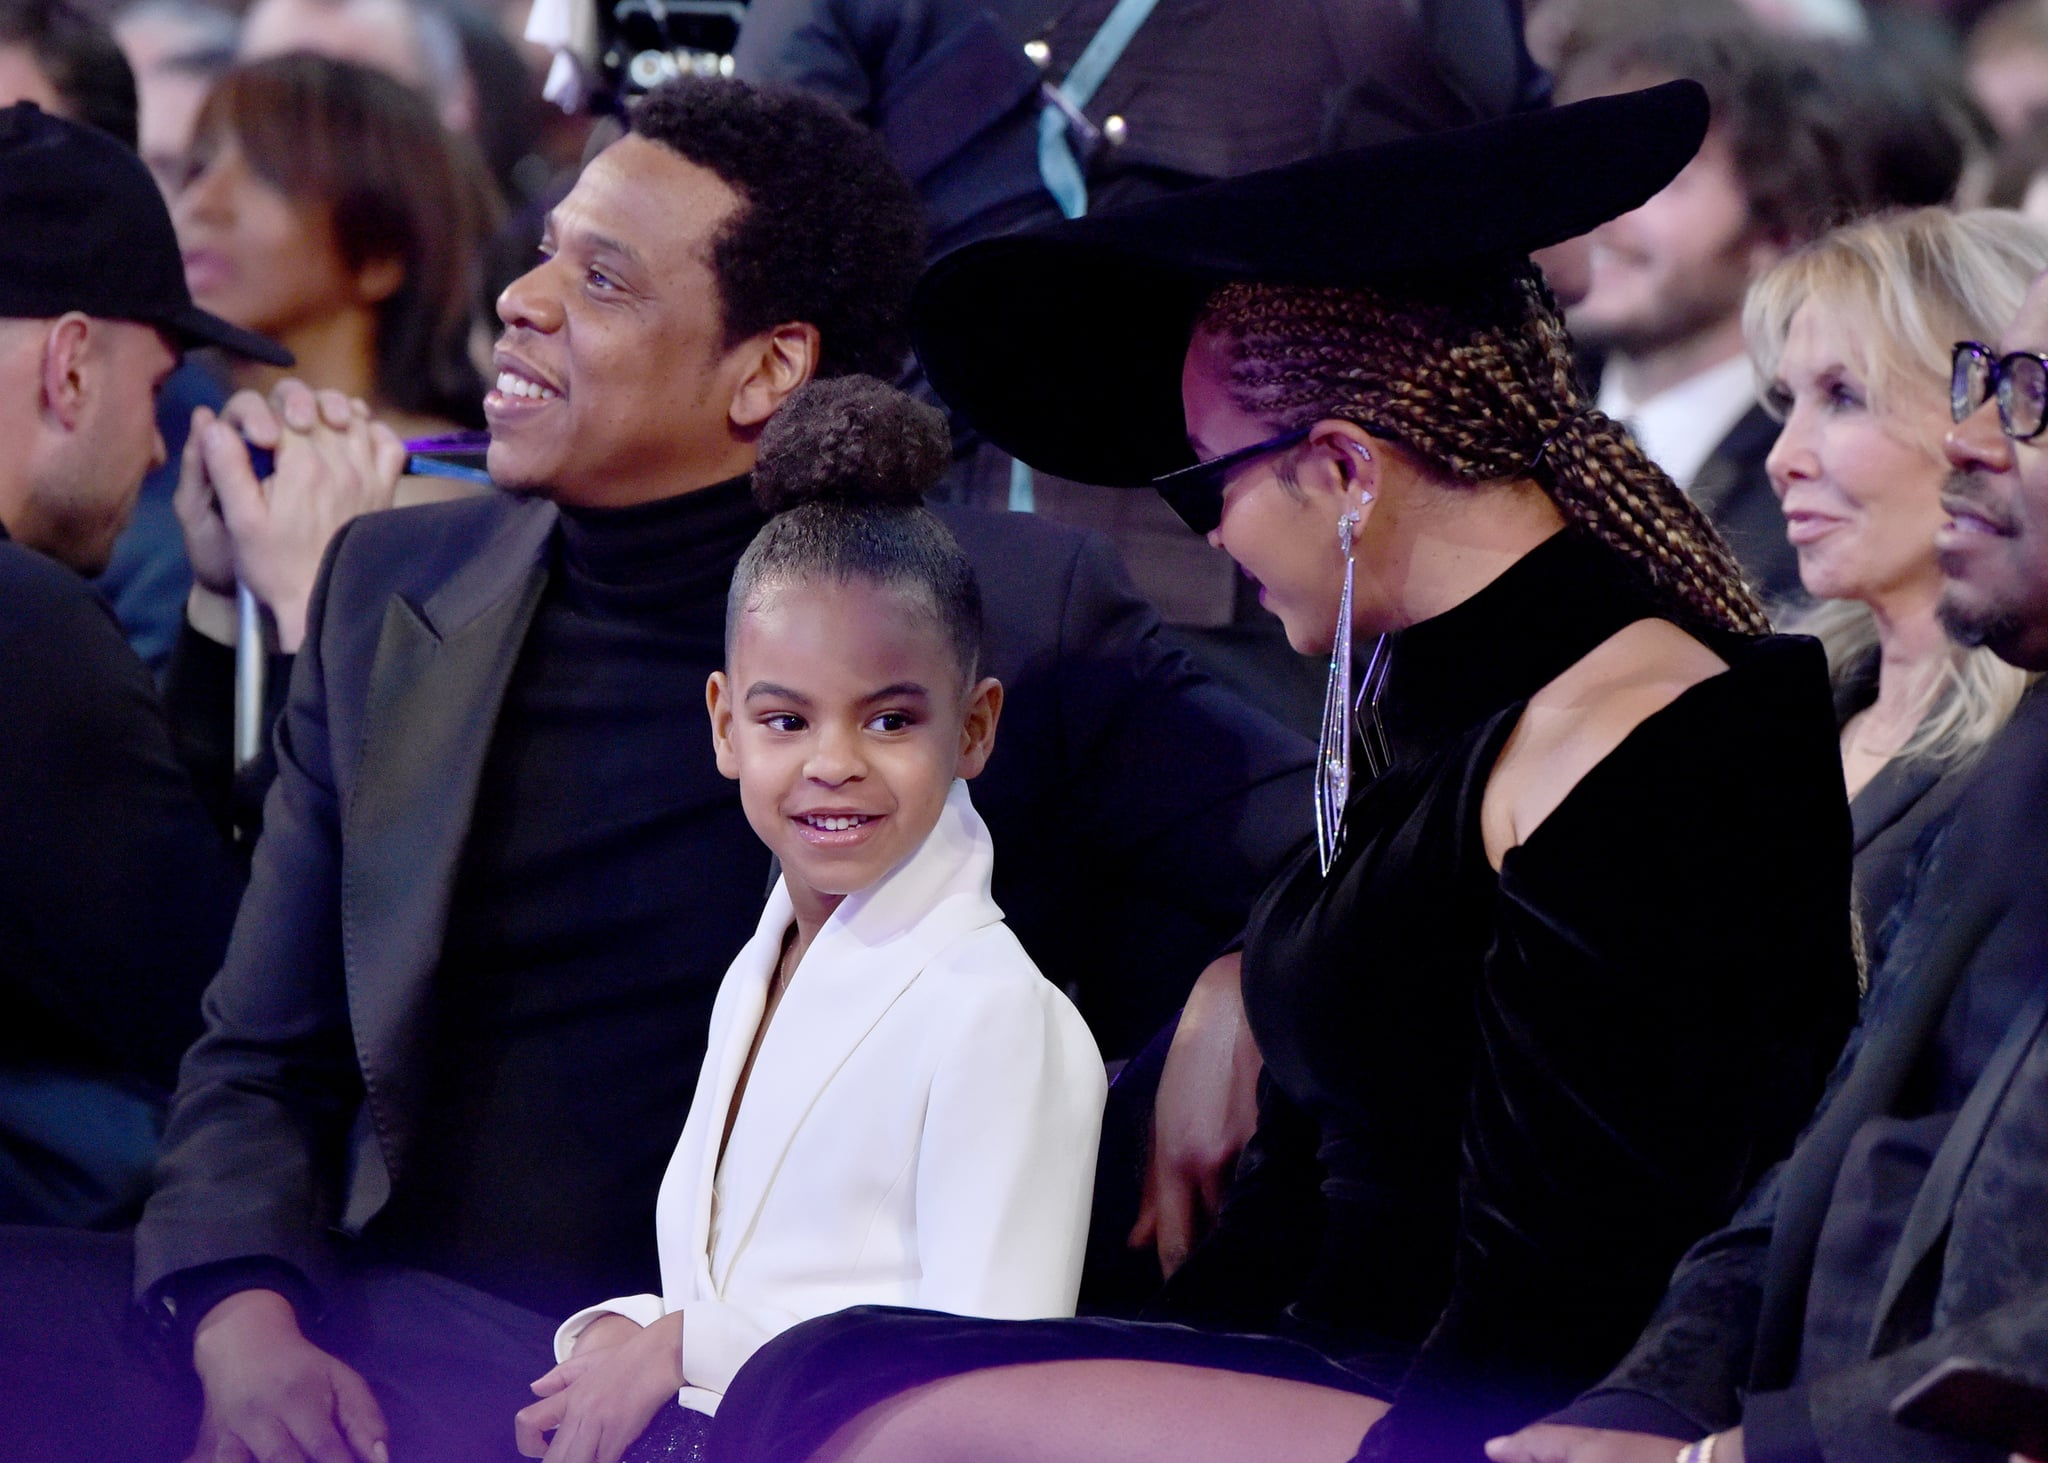 NEW YORK, NY - JANUARY 28:  Recording artist Jay Z, daughter Blue Ivy Carter and recording artist Beyonce attend the 60th Annual GRAMMY Awards at Madison Square Garden on January 28, 2018 in New York City.  (Photo by Lester Cohen/Getty Images for NARAS)